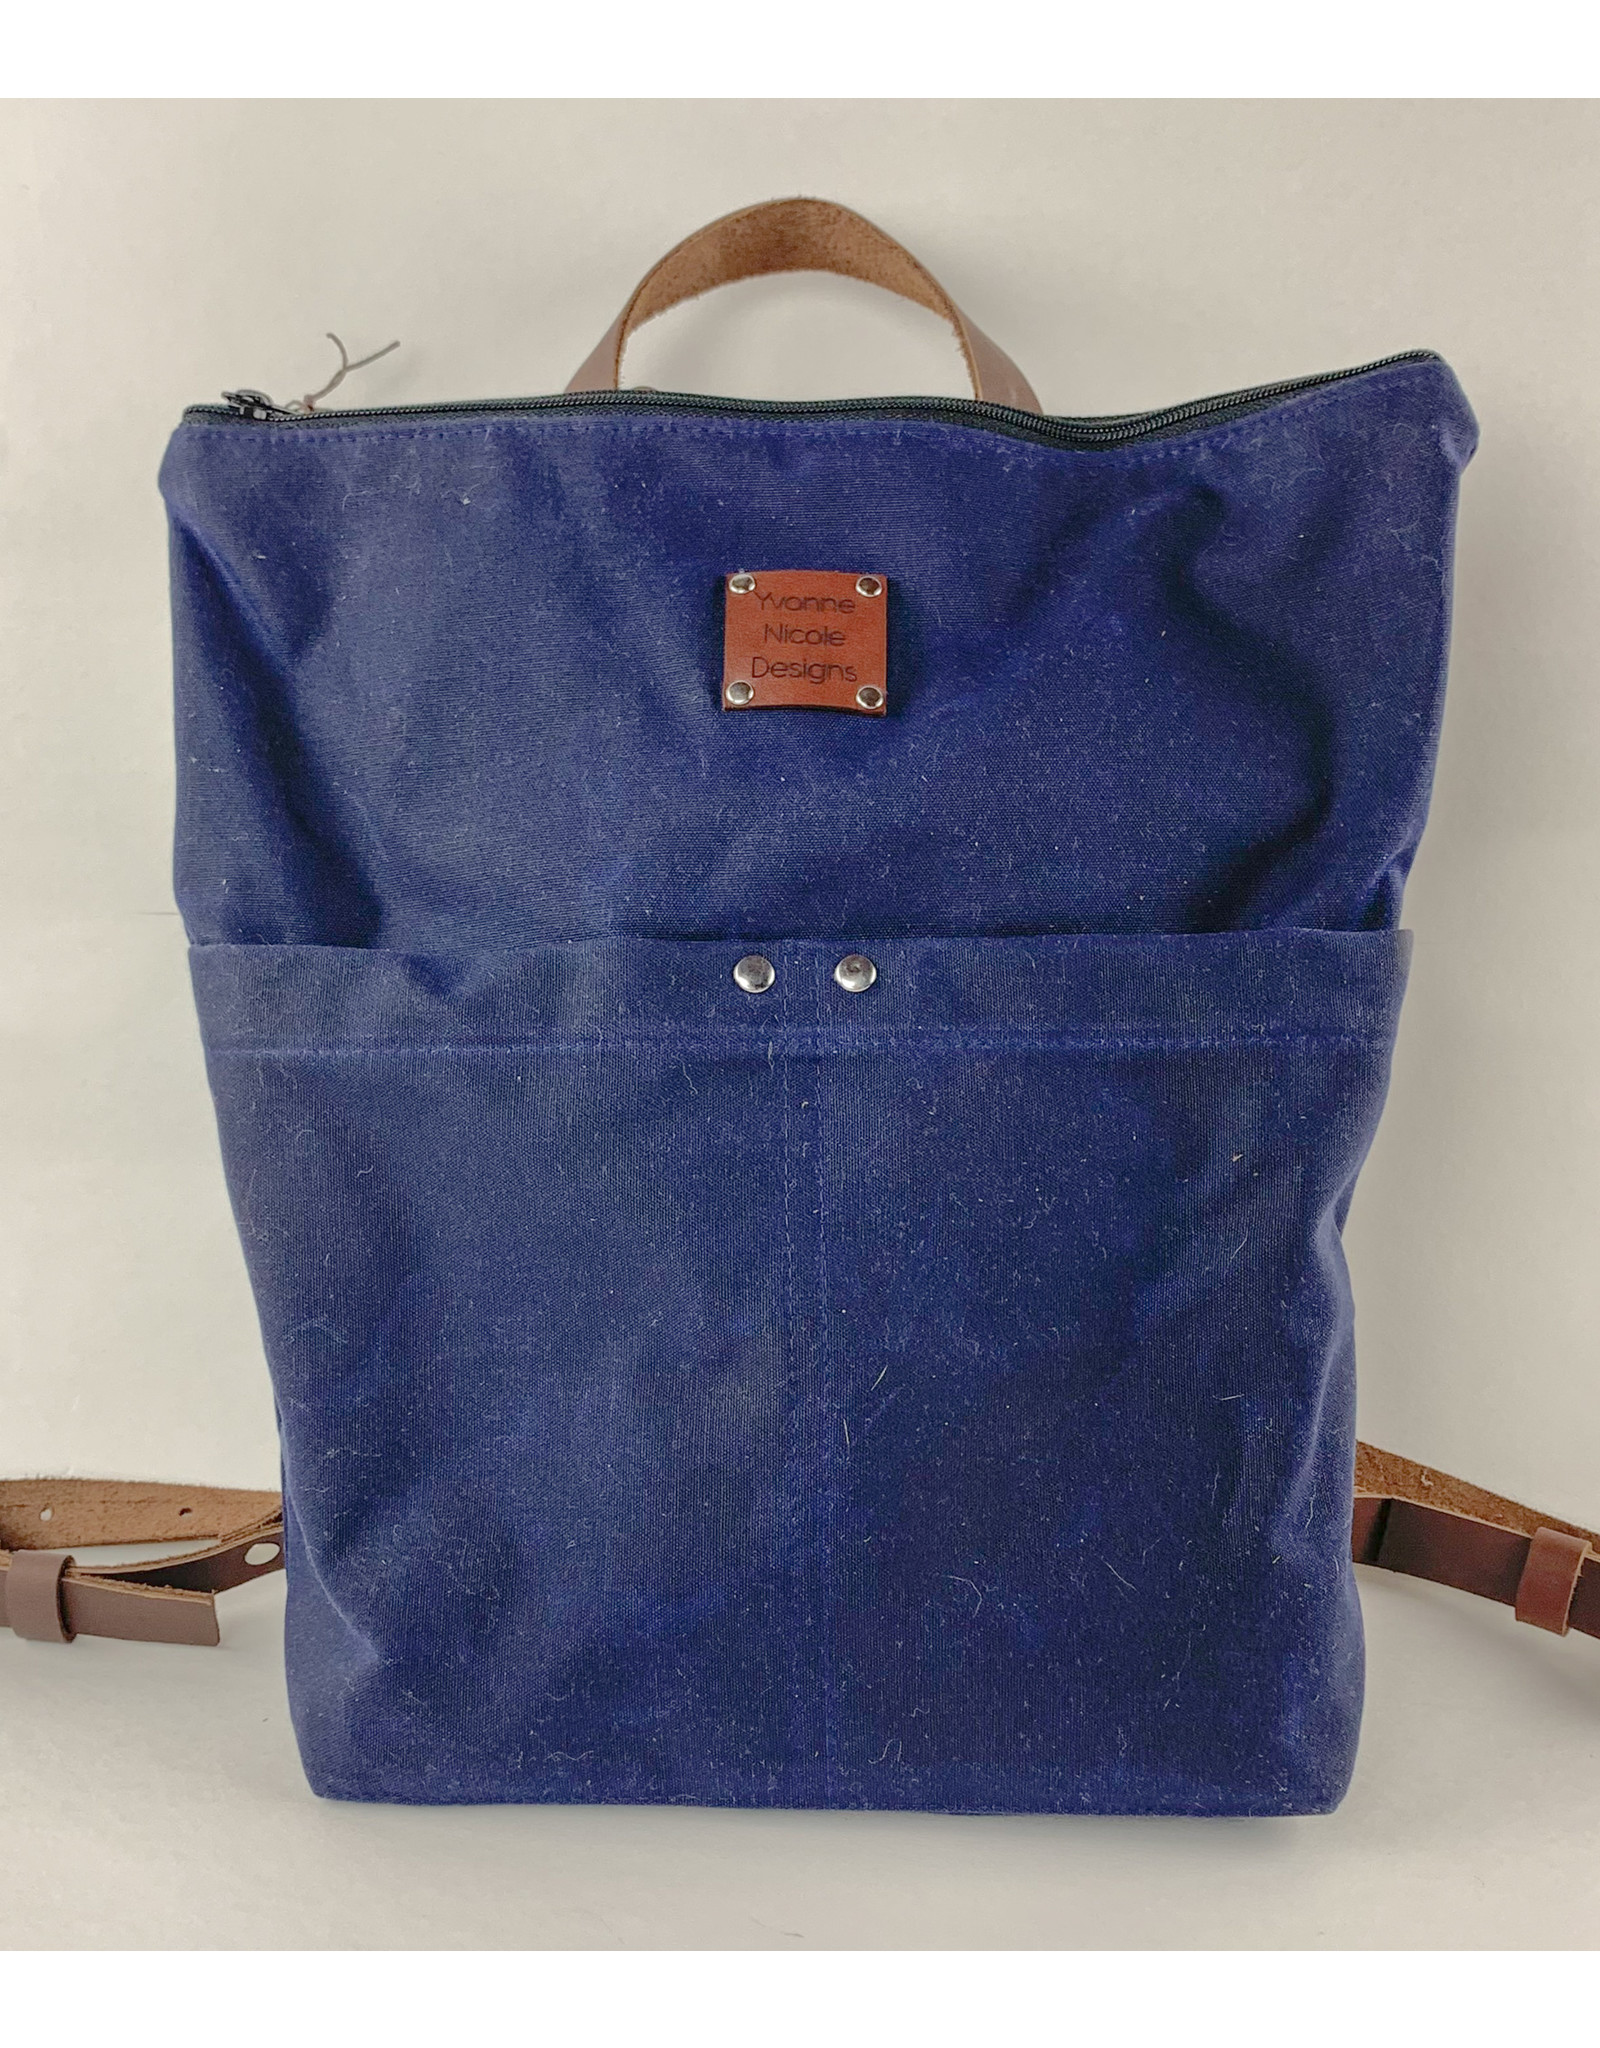 Yvonne Nicole Designs Navy Blue Backpack Consignment